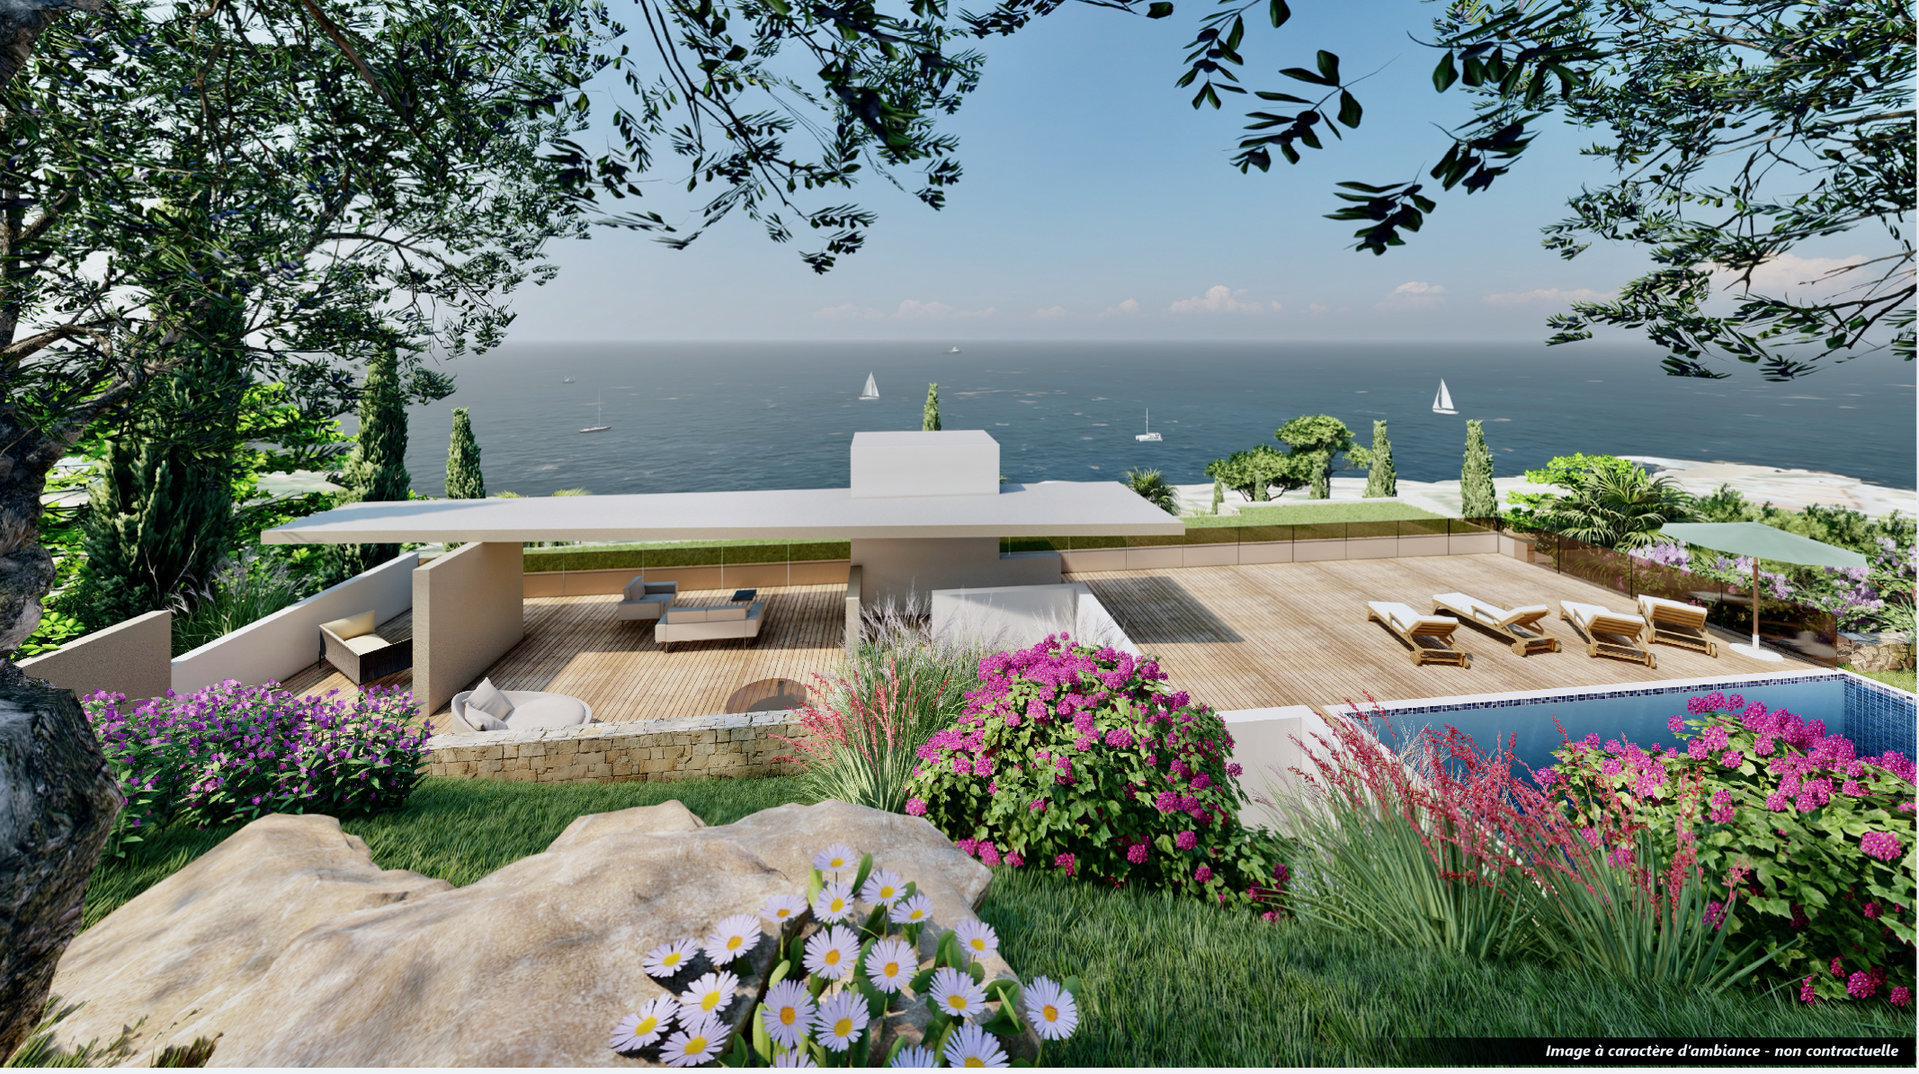 Les Issambres - 90,52 m2 living & 71,5 m2 terrace - New construction high standing apartment with great sea-view